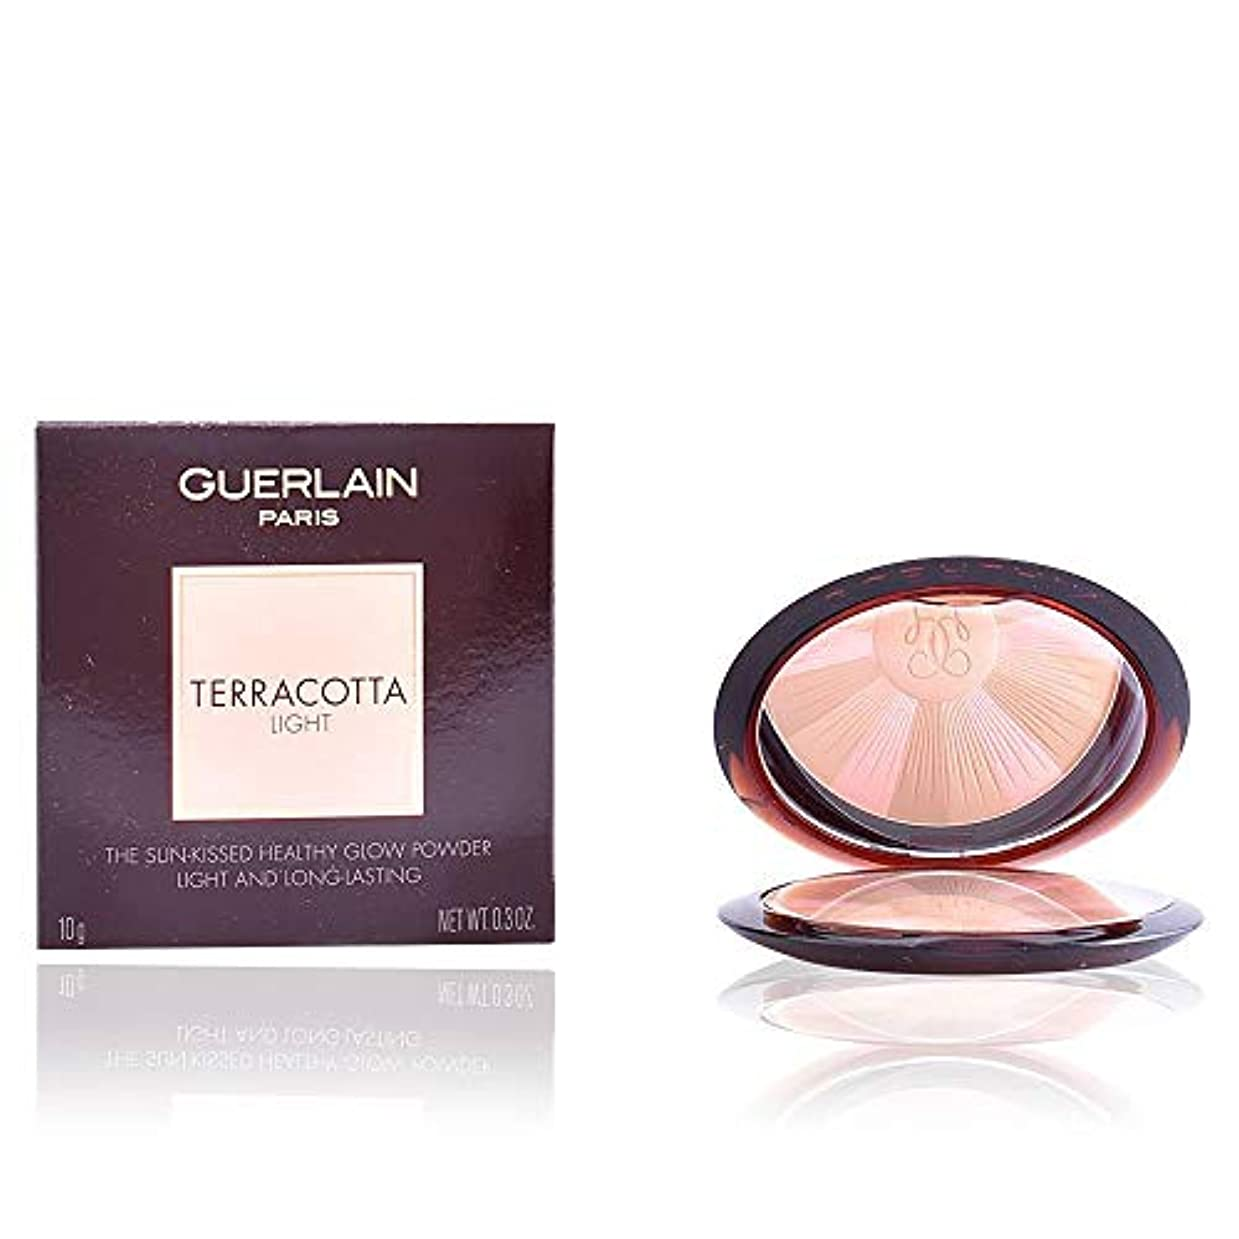 鹿盆地エジプトゲラン Terracotta Light The Sun Kissed Healthy Glow Powder - # 00 Light Cool 10g/0.3oz並行輸入品